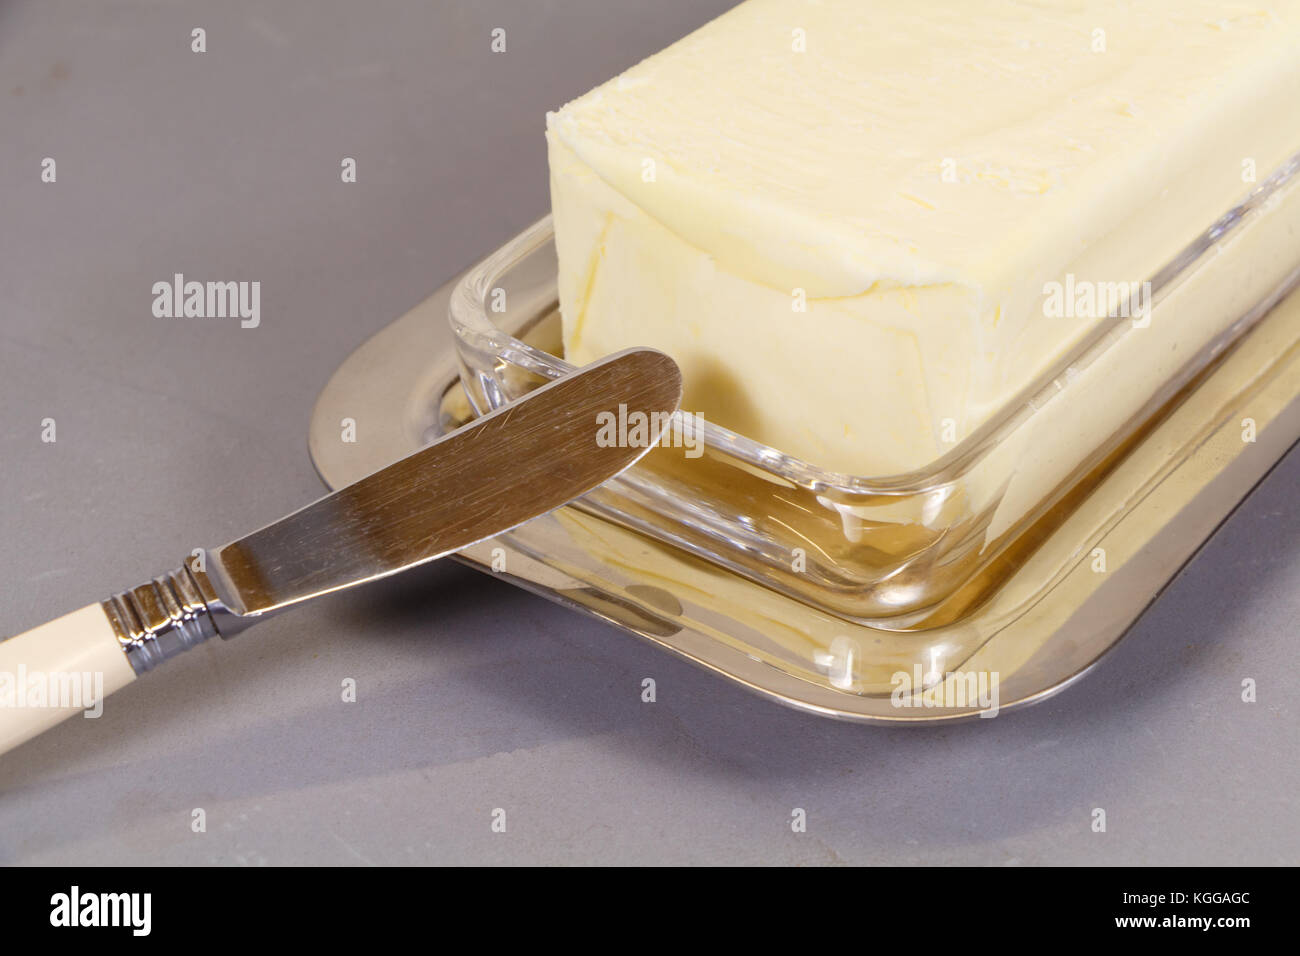 Knife and pack of butter in a butter dish Stock Photo